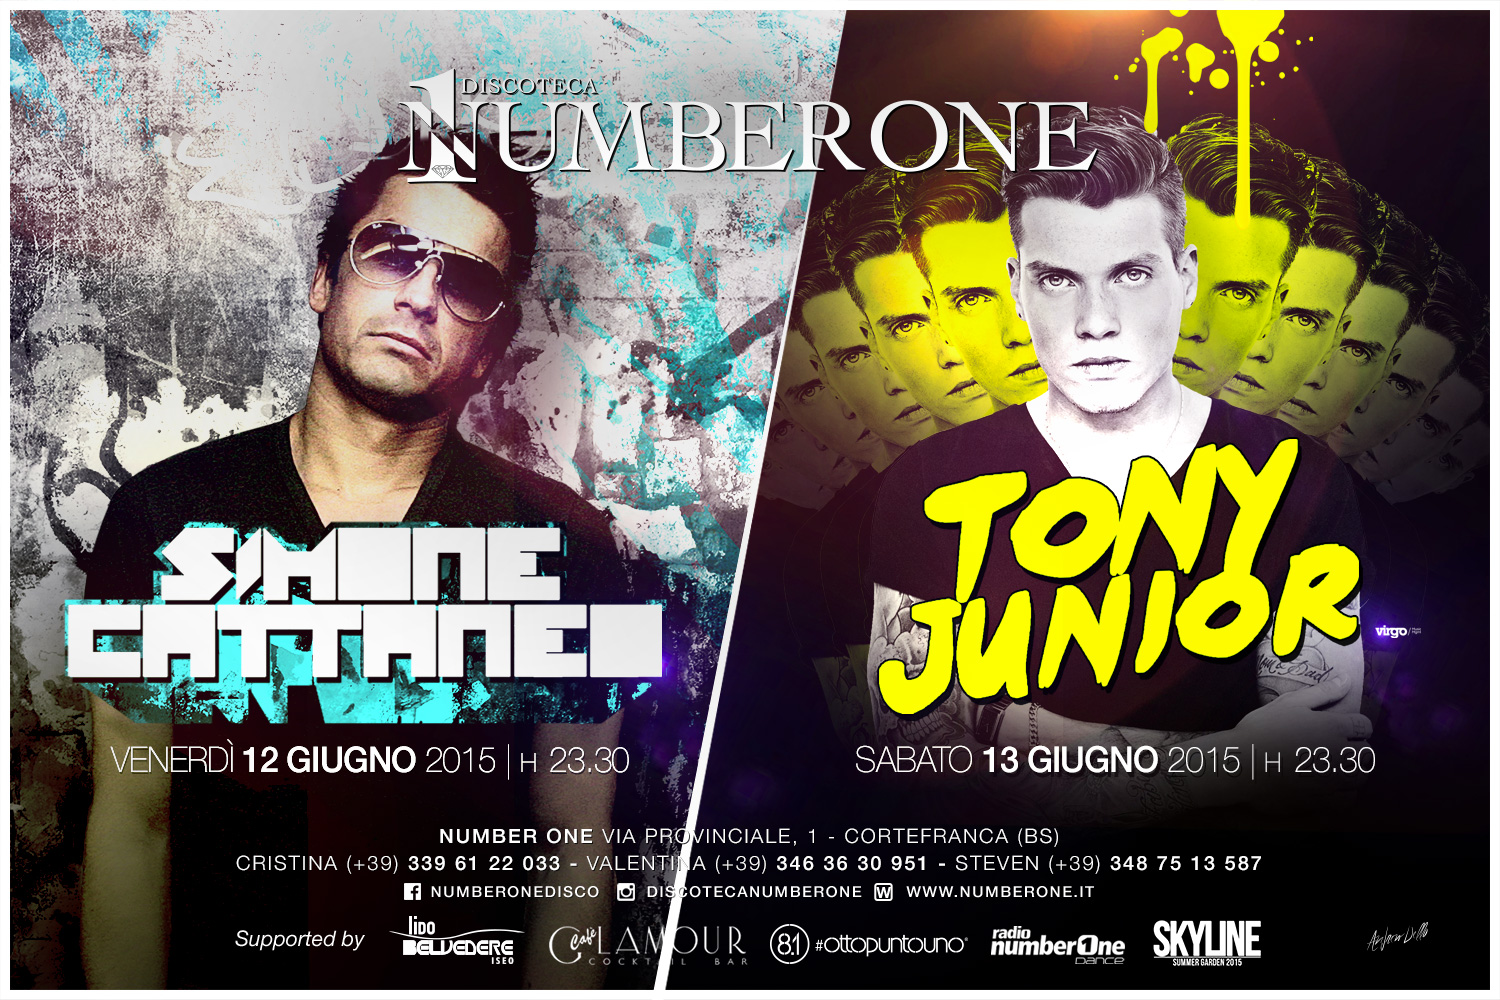 Simone Cattaneo & Tony Junior